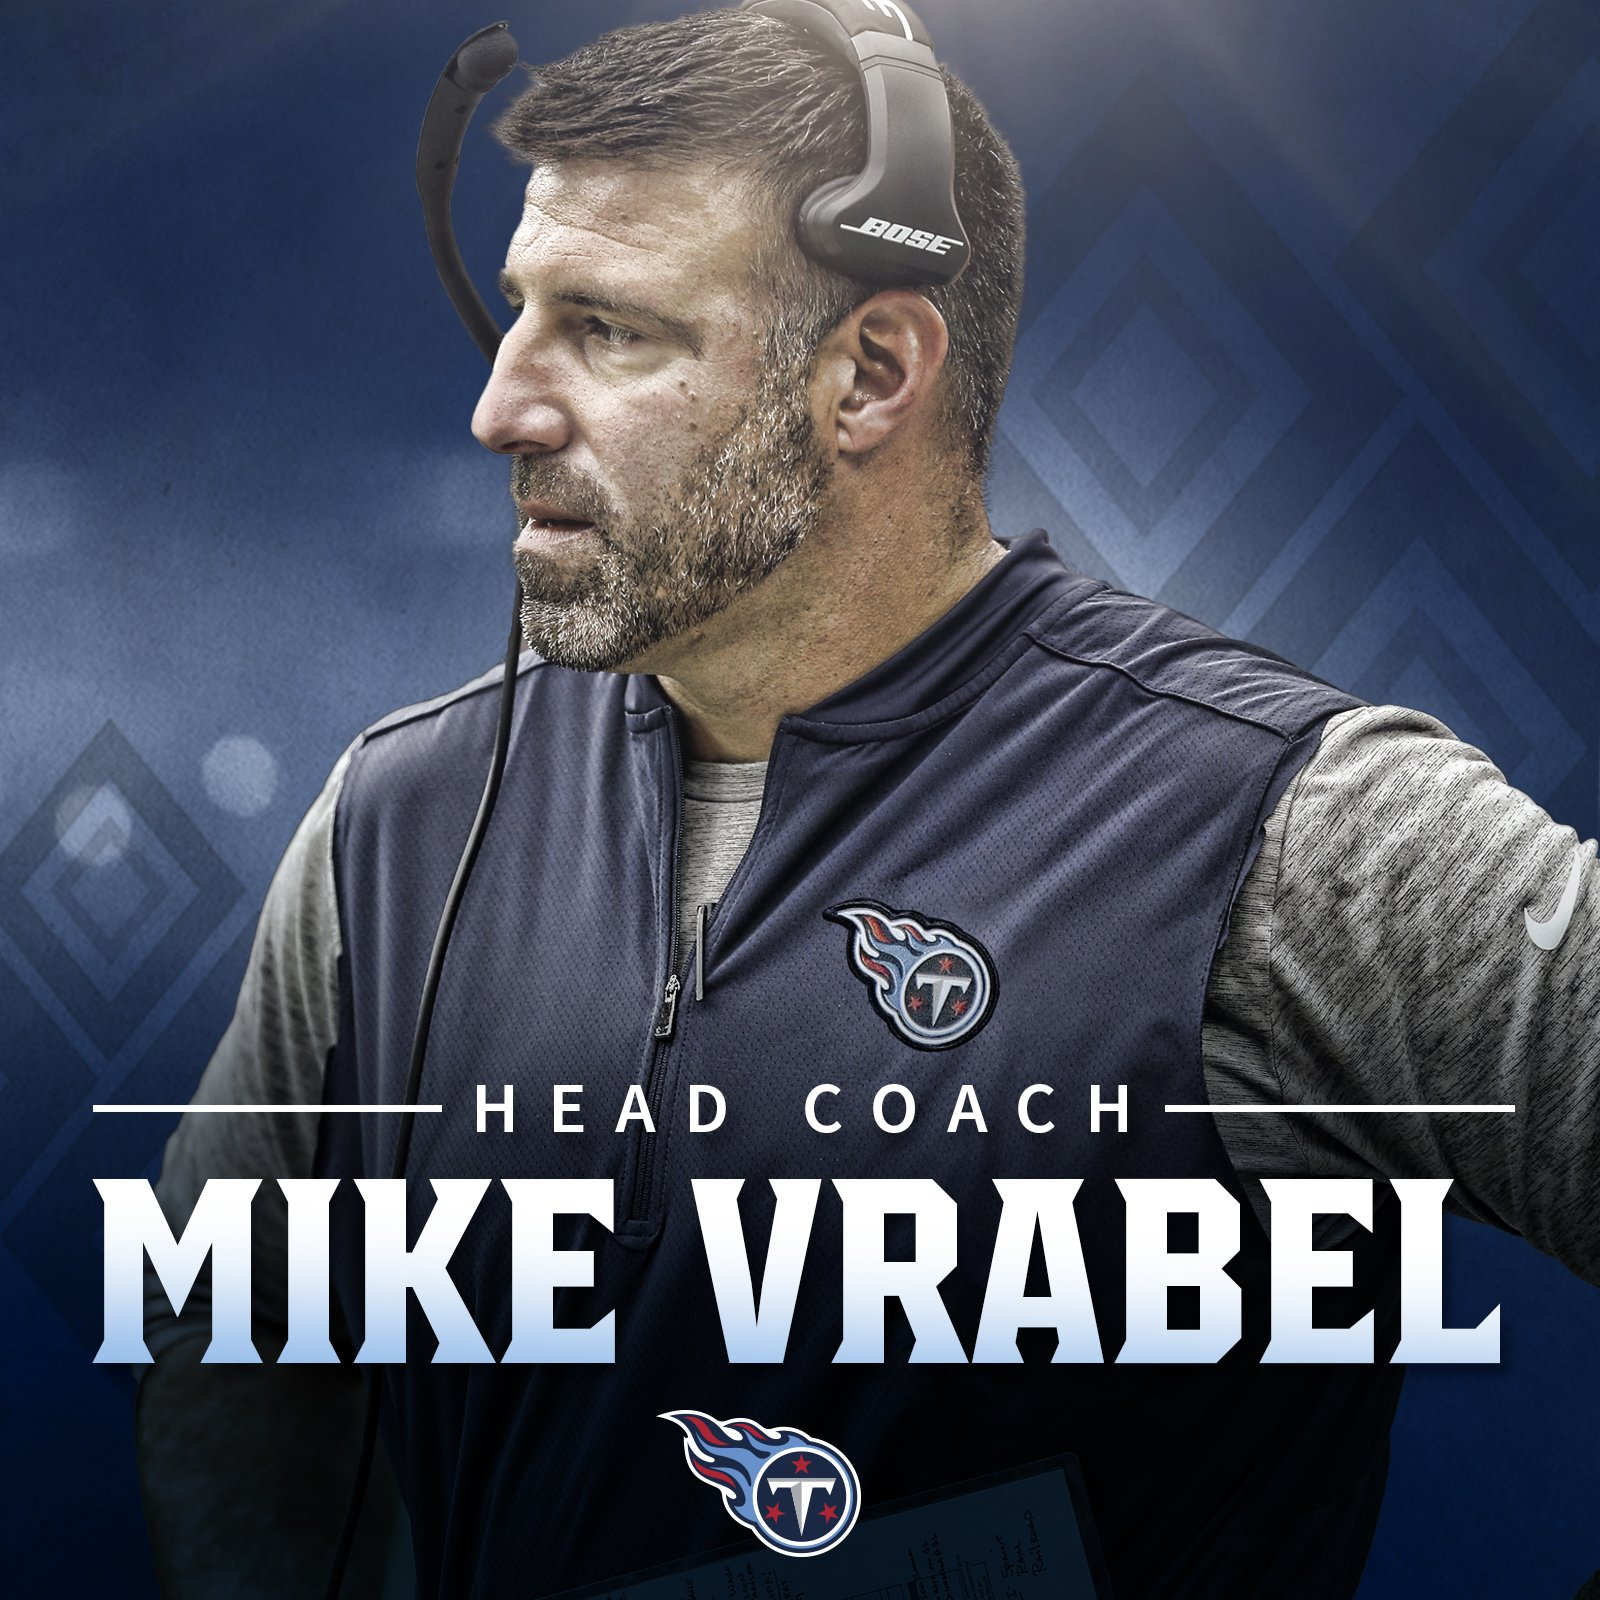 The new head coach of the Tennessee Titans is Mike Vrabel. #TitanUp   Leader of Men �� » https://t.co/mE5I53cZs8 https://t.co/P9WuvJ7Kol